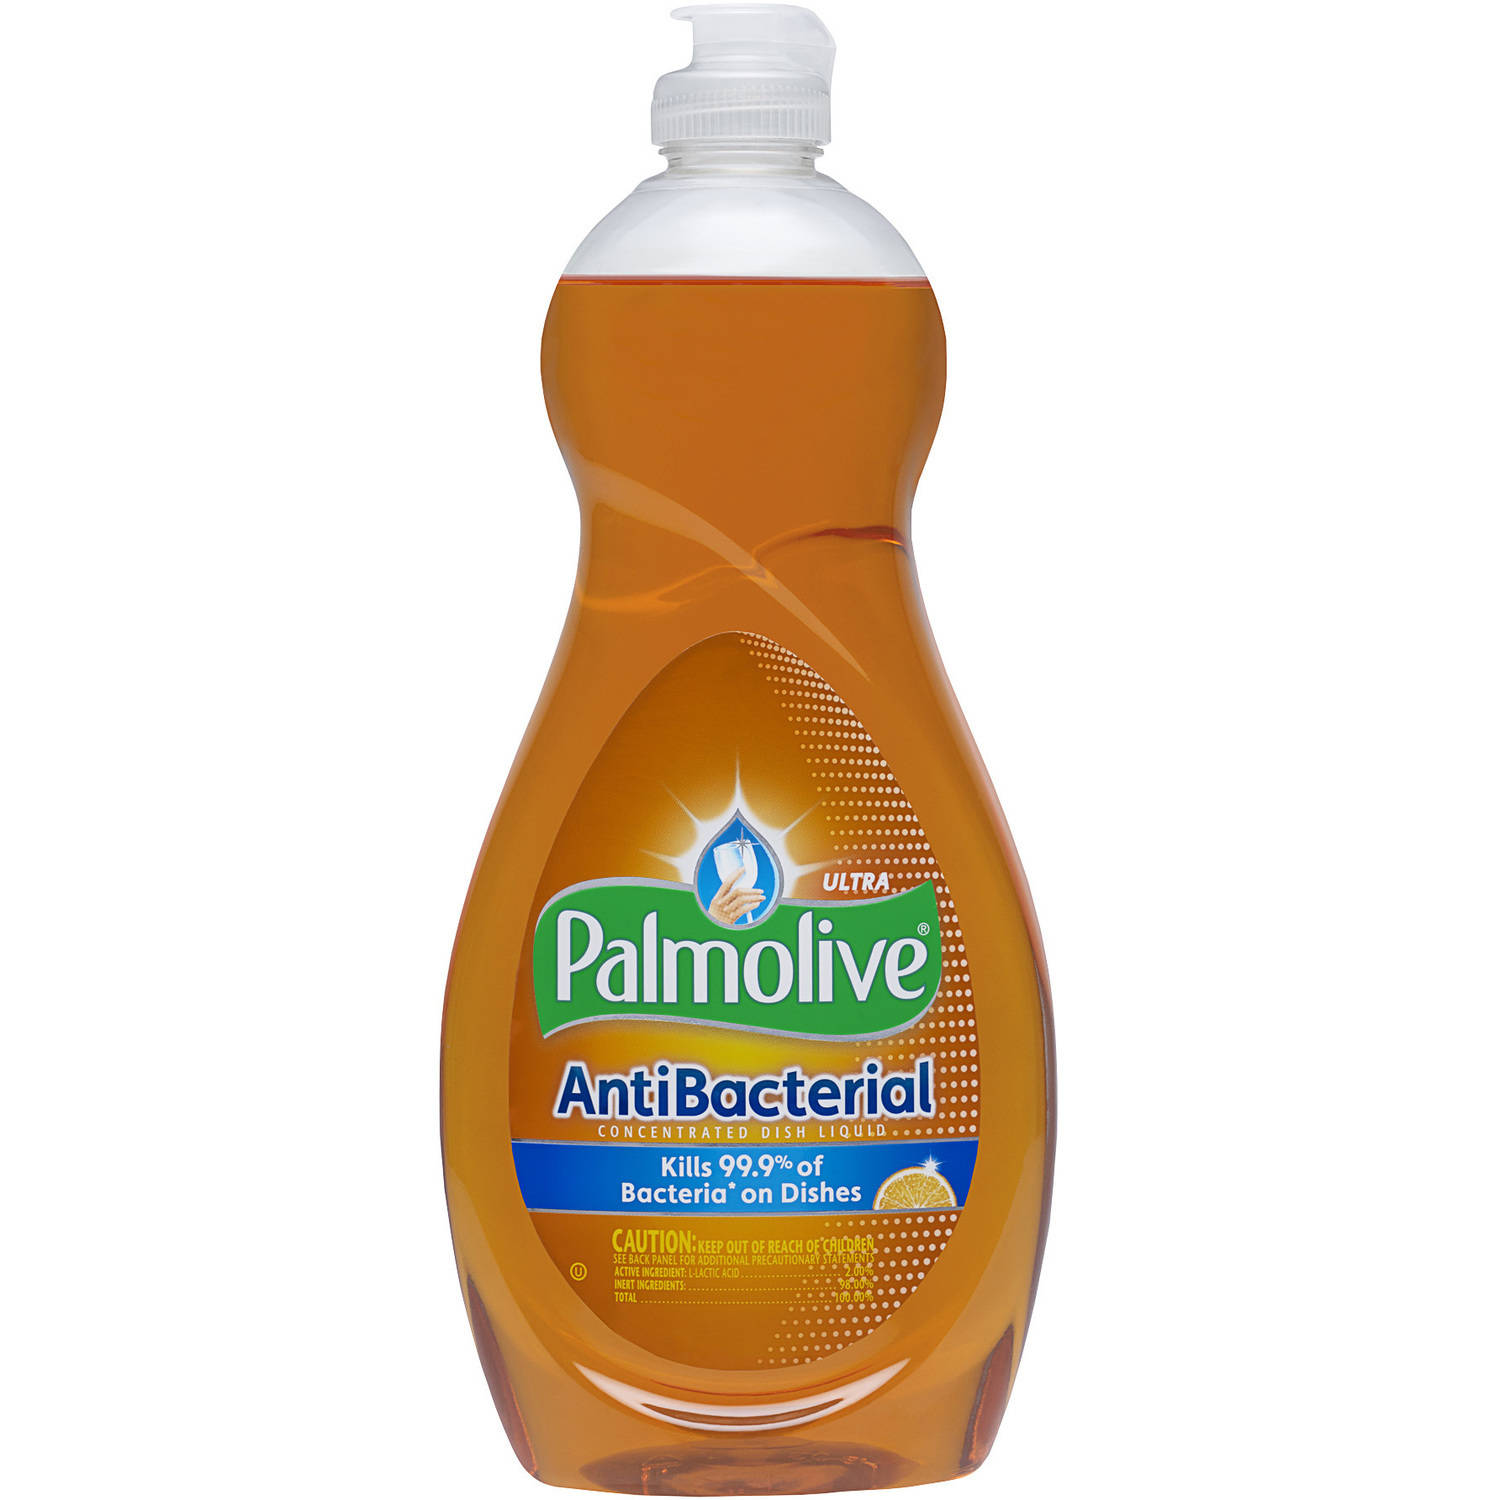 Palmolive Ultra Dish Liquid, Antibacterial, 25 Fluid Ounce